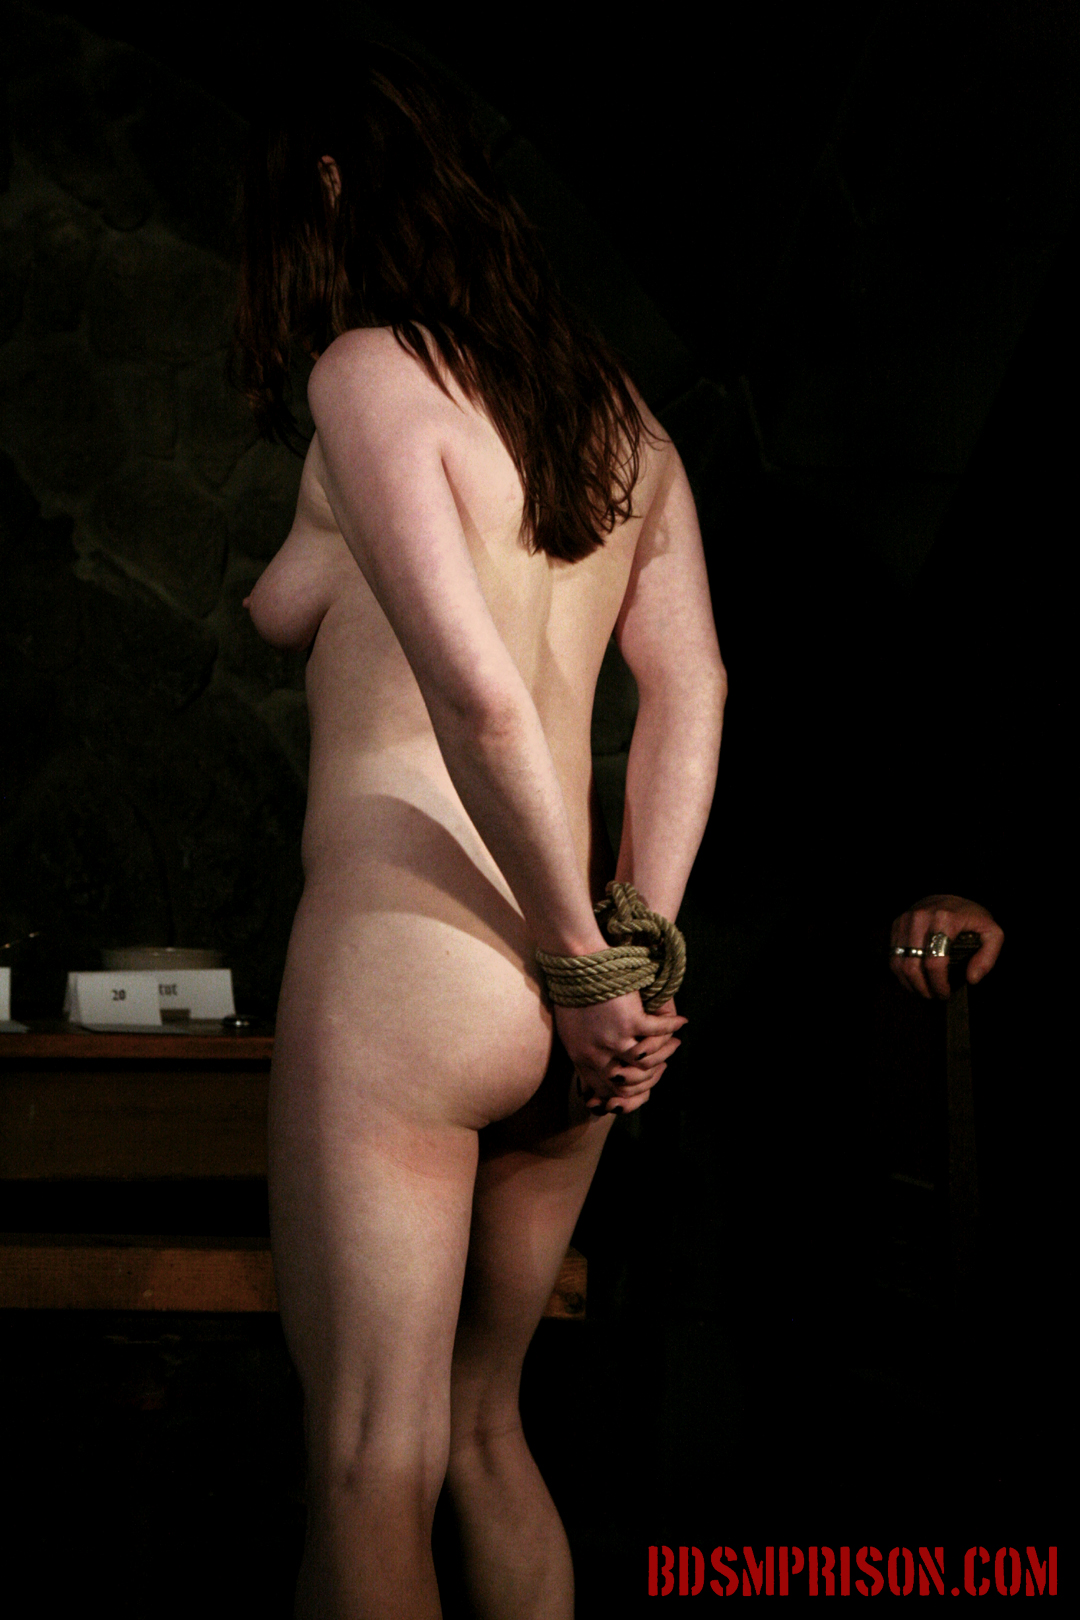 Sophie endures domination bondage sex toys dildo deepthroat bj. Sophie is punish daily by three prison guards. She's been sentenced to lifelong sex slave traininig. She wakes up bound to a chair, nipple weights hanging low to the floor. Sophie will endure three BDSM Masters, domination, bondage, breast, kitty and nipple tortured with clamps, intense spanking, whipping and smacking, humiliation, sex toys, dildo with a deepthroat BJ. They even have whip cream for her. This prison slut has earned a treat.